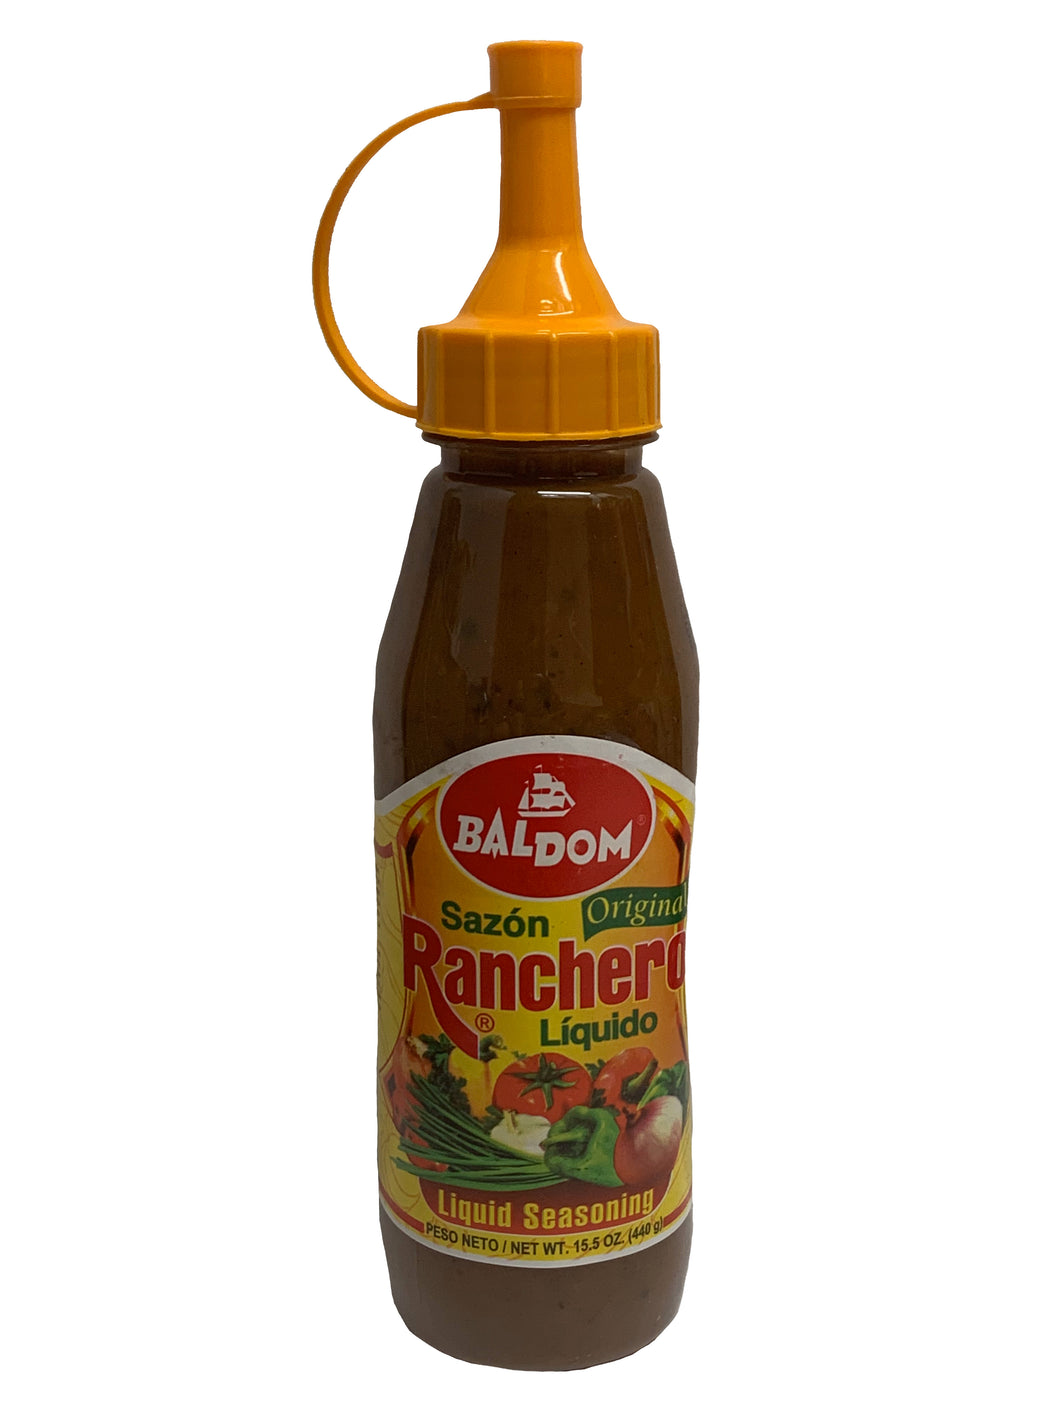 Baldom Ranchero Original Seasoning